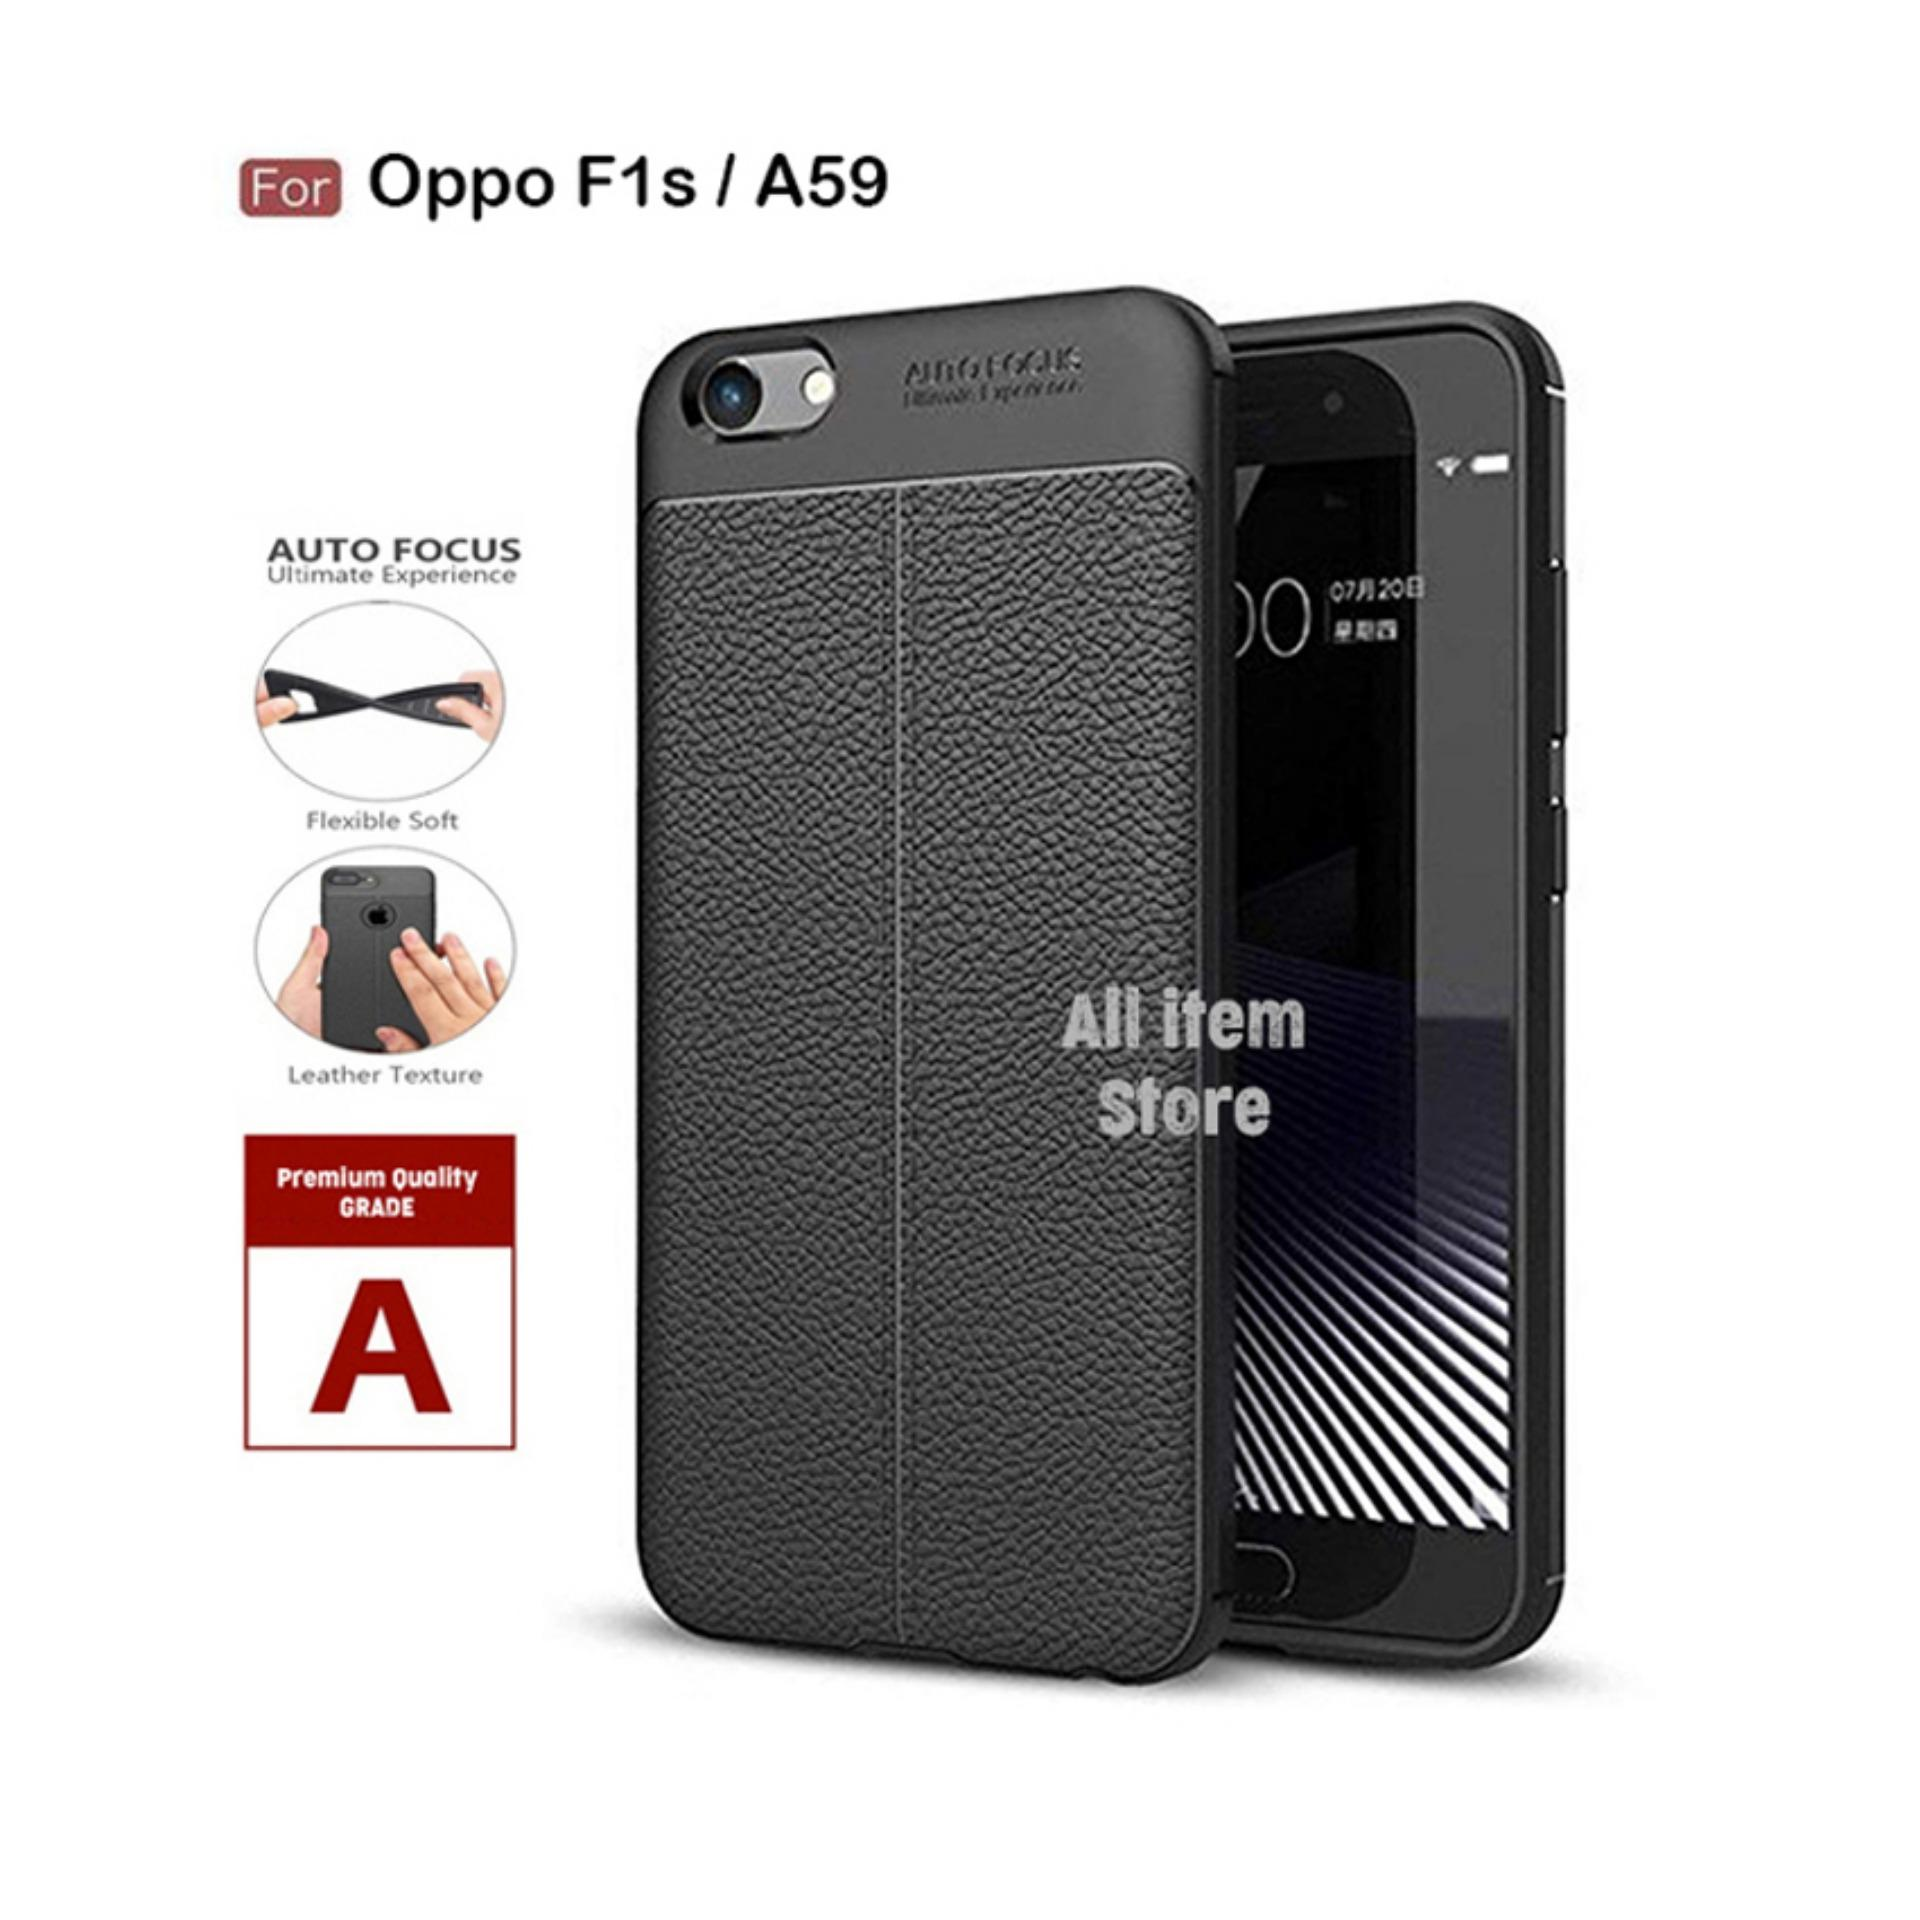 Case Auto Focus For Oppo F1s / A59 Black Matte Autofocus - Hitam